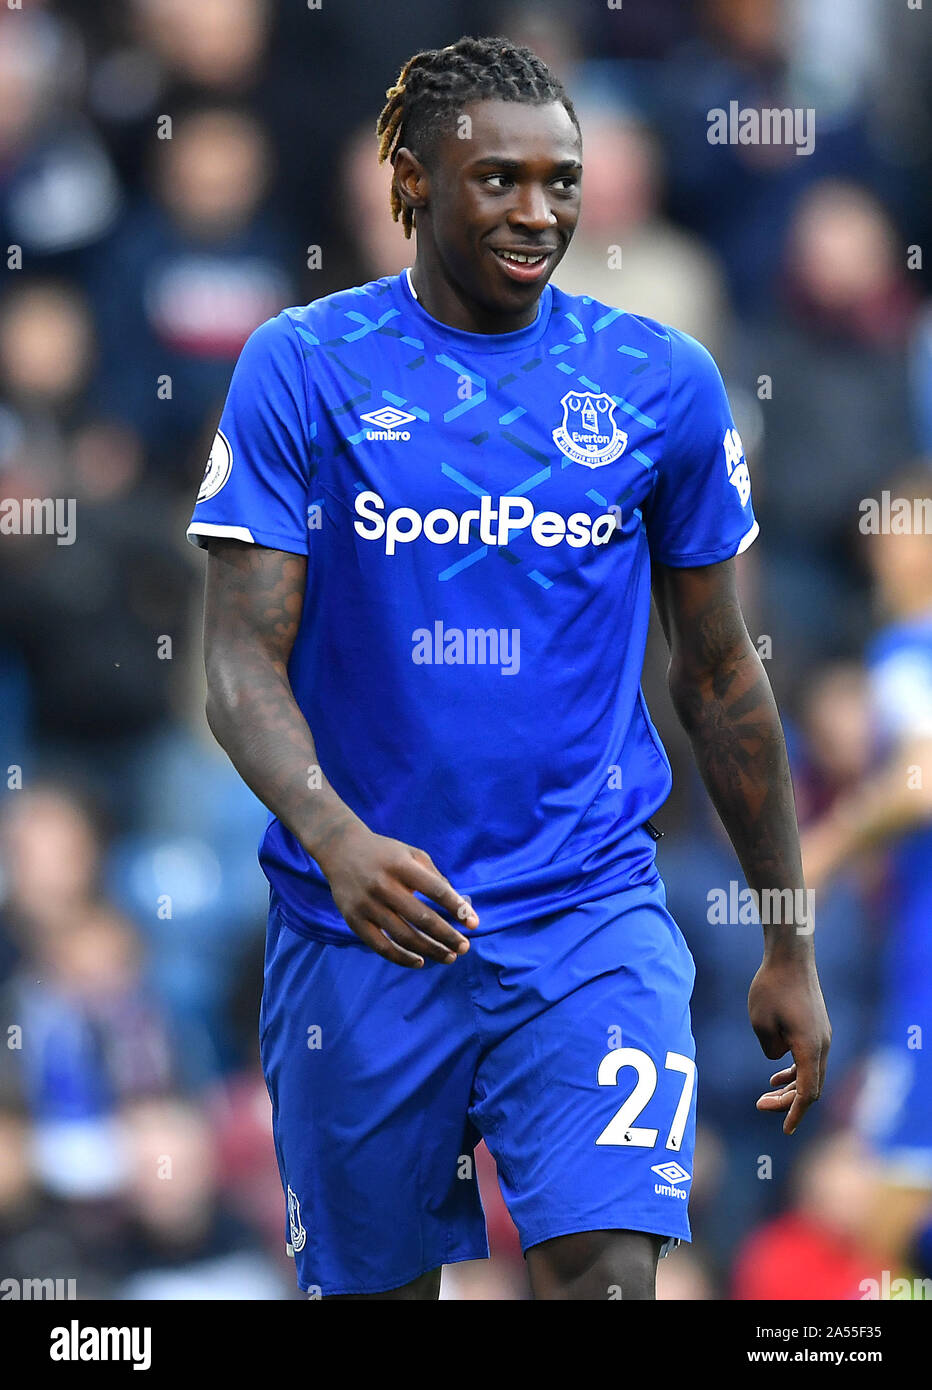 Moise Kean High Resolution Stock Photography And Images Alamy